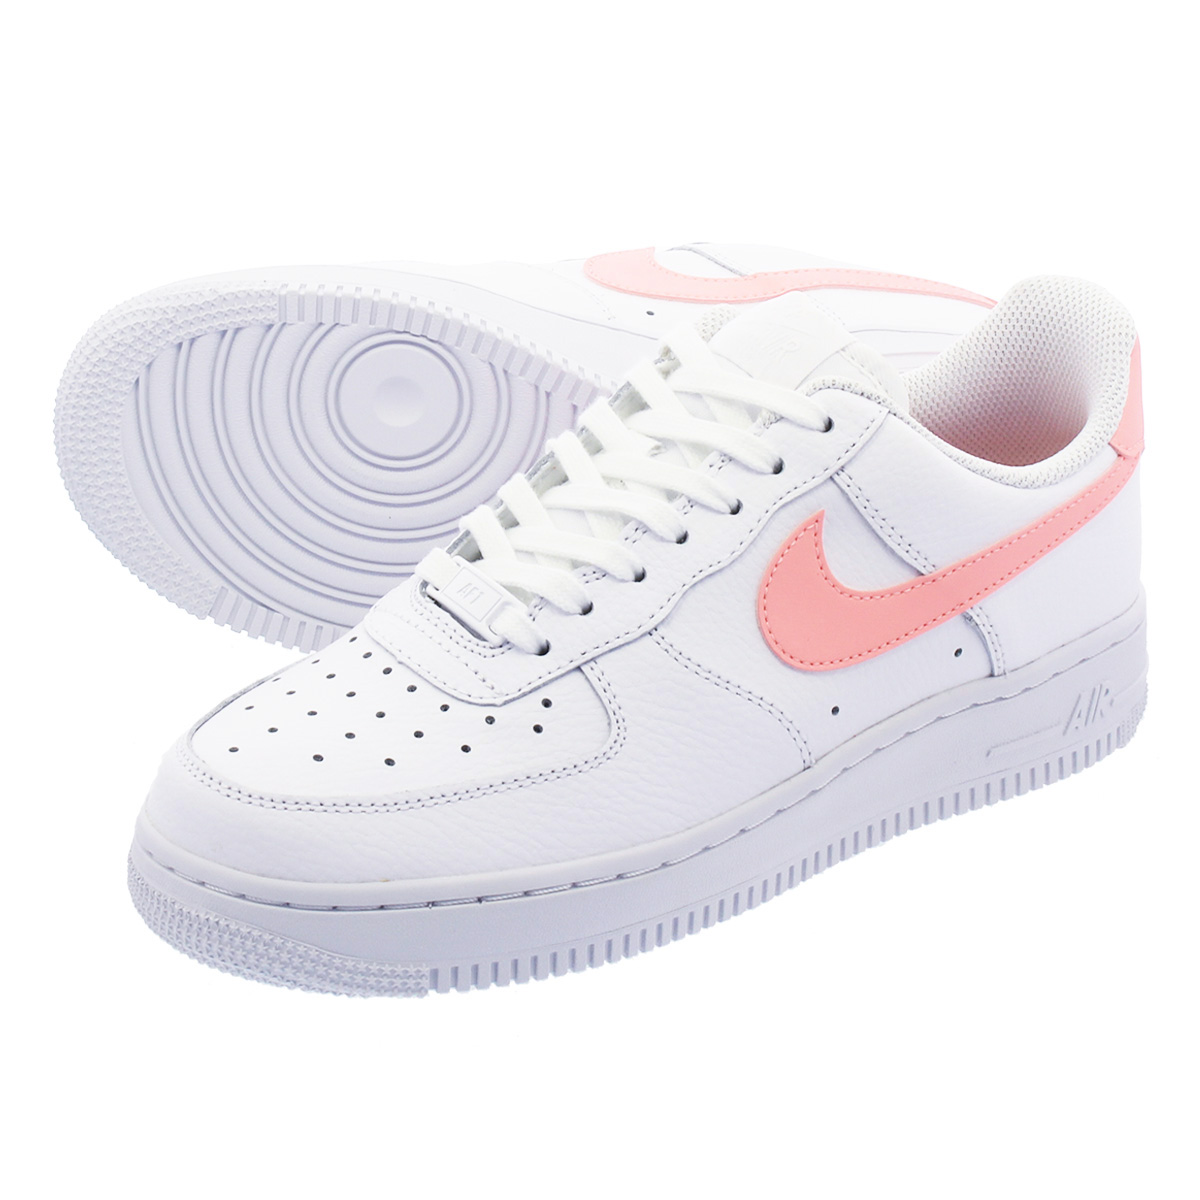 63ade7ee52bd7 NIKE WMNS AIR FORCE 1 07 Nike women air force 1 07 WHITE/ORACLE PINK ...